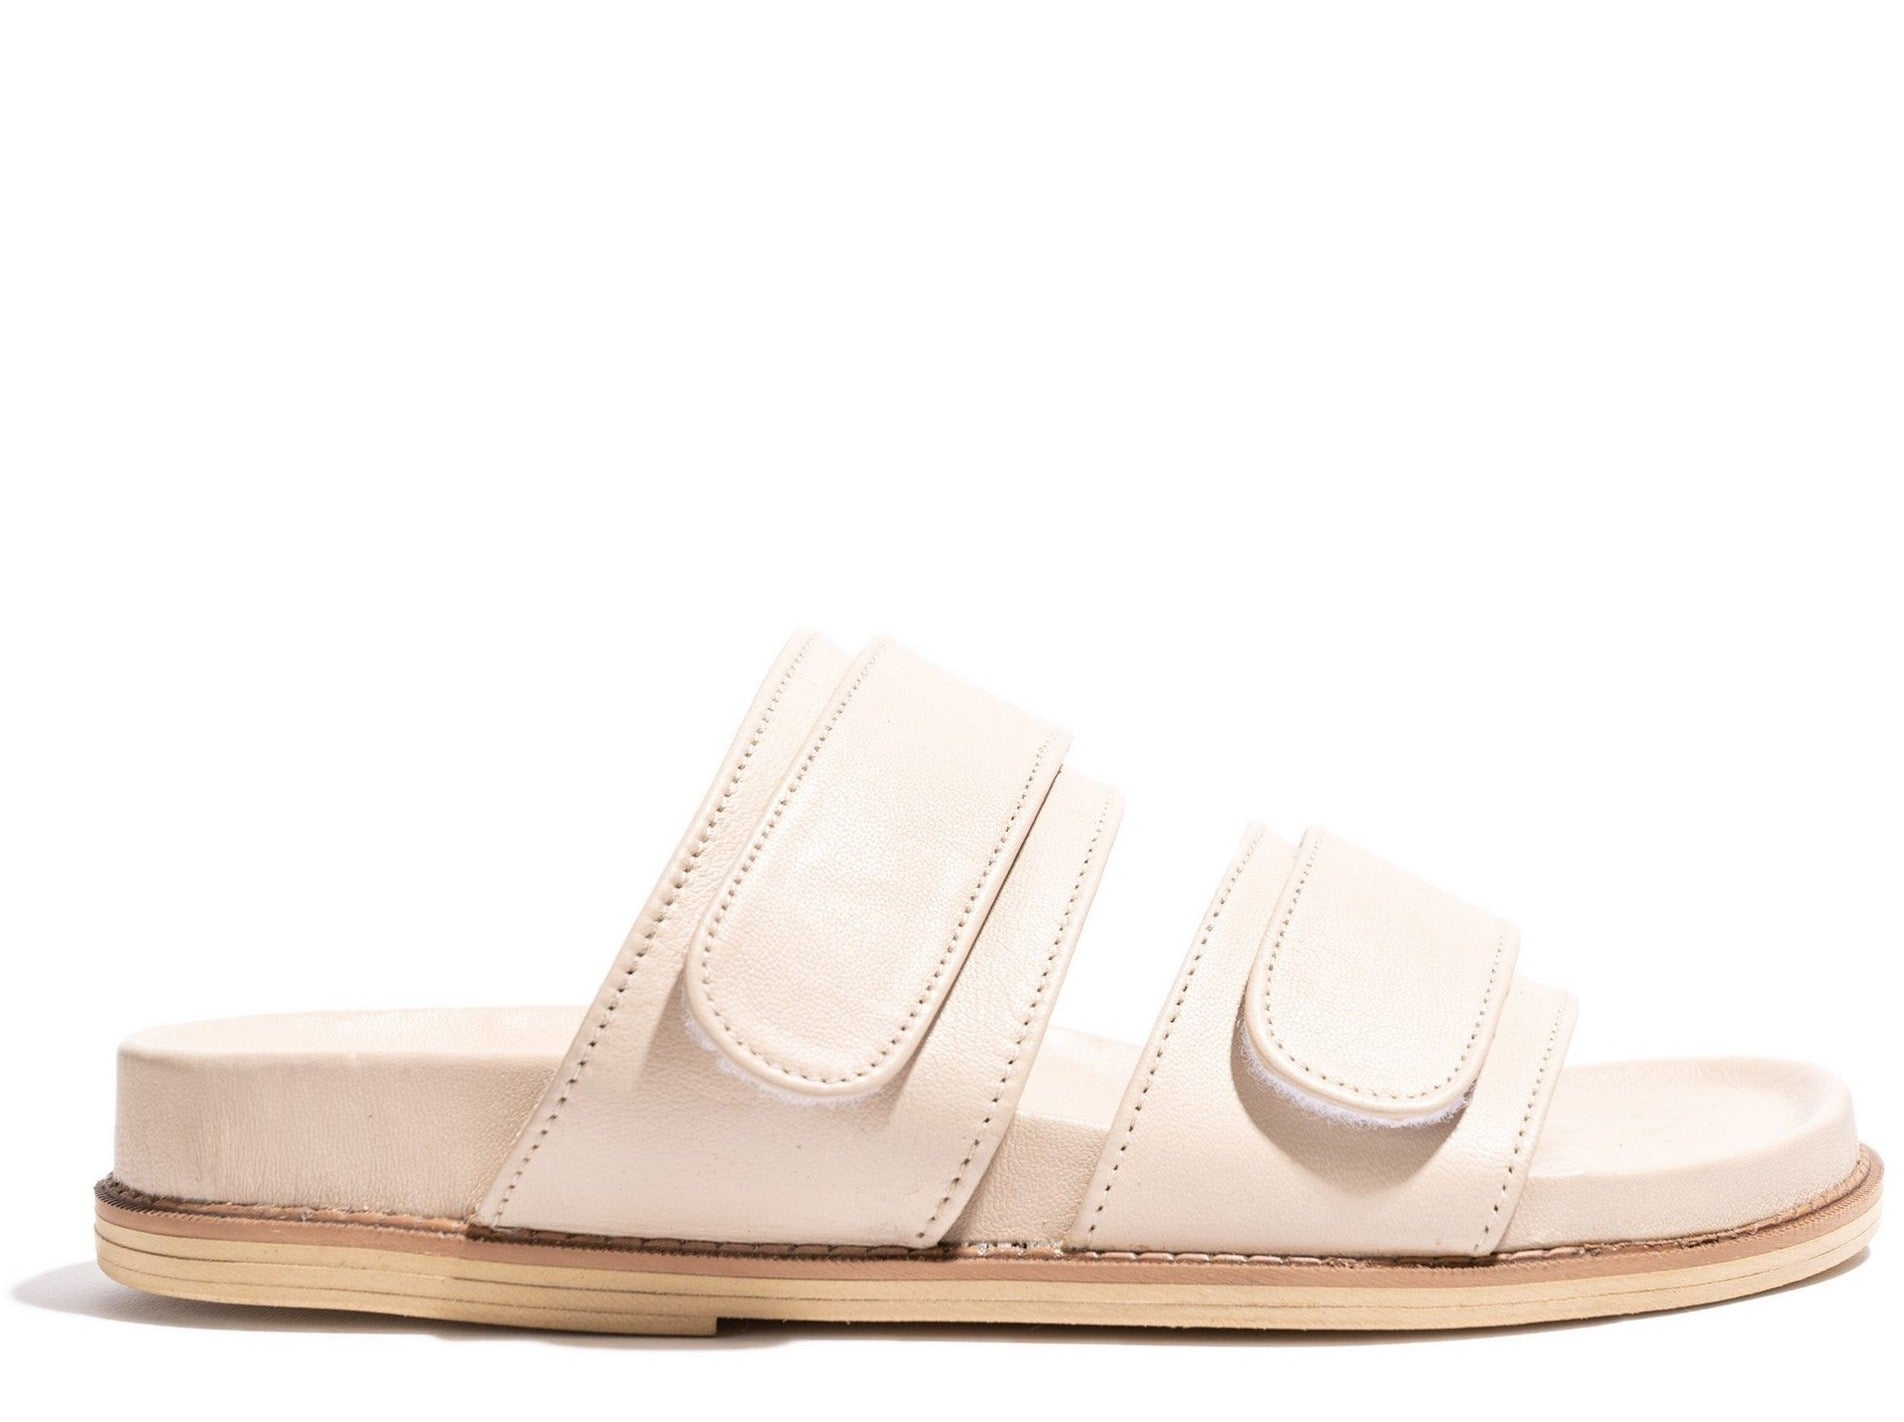 James Smith Izano Slide in Nude